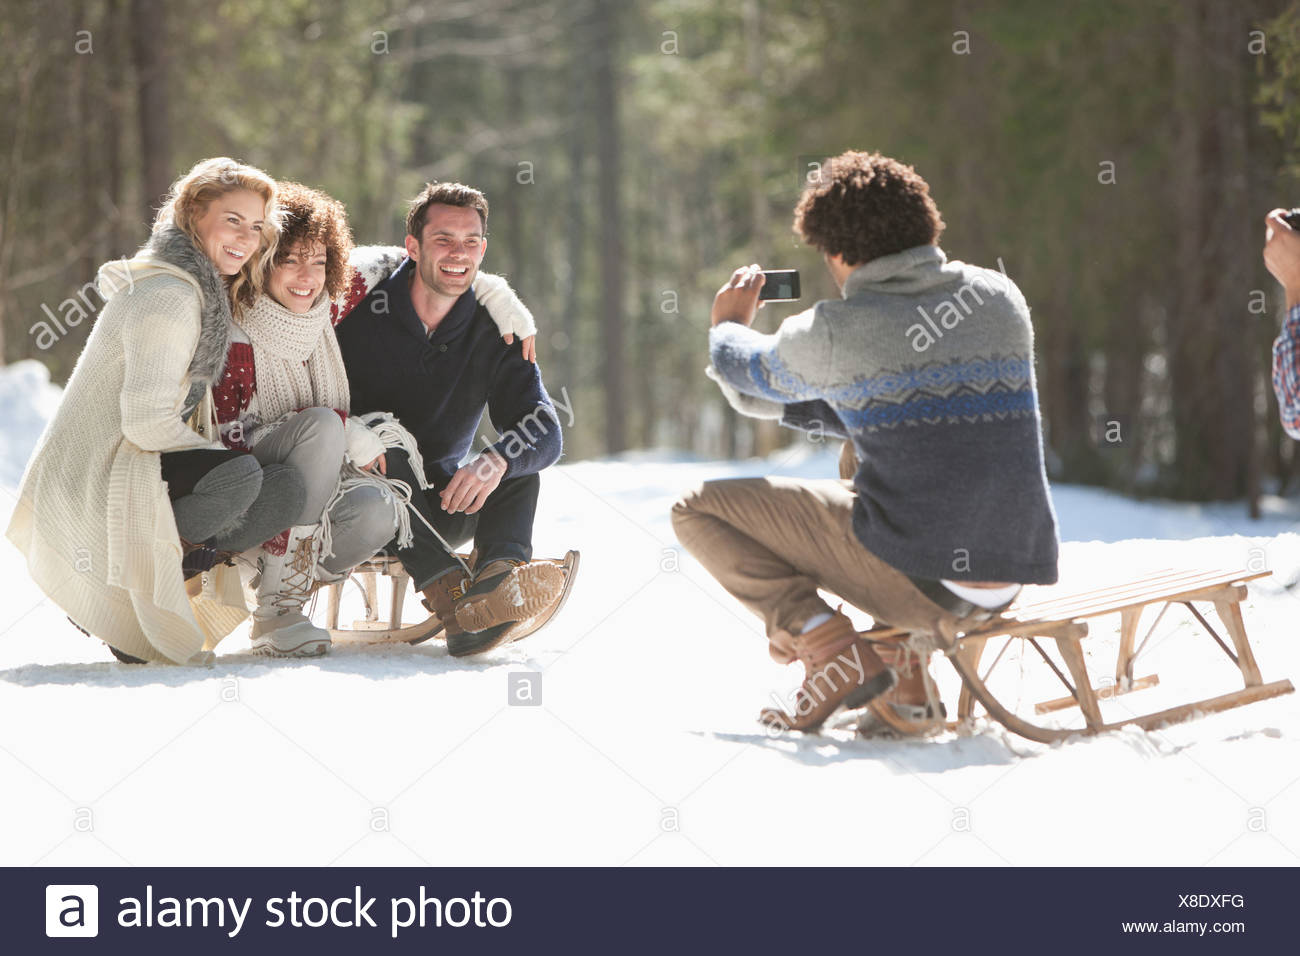 Quatre amis taking photograph in snowy landscape Photo Stock